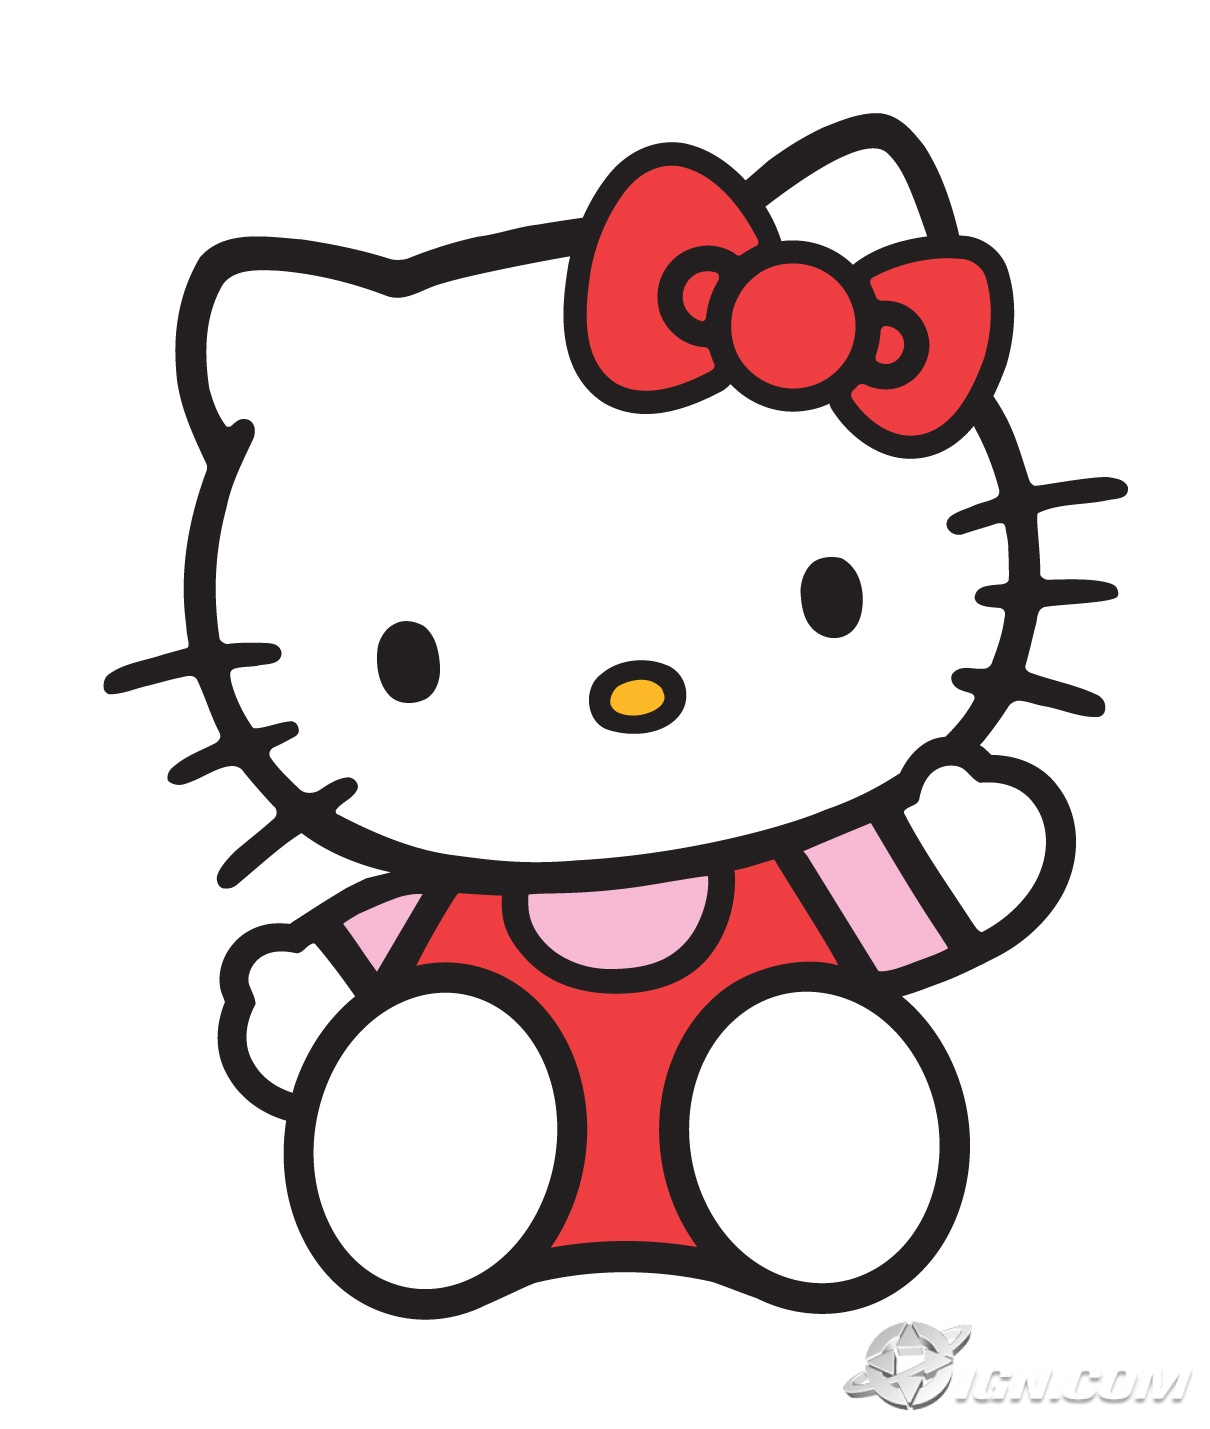 Dessins en couleurs imprimer hello kitty num ro 116877 - Hello kitty imprimer ...